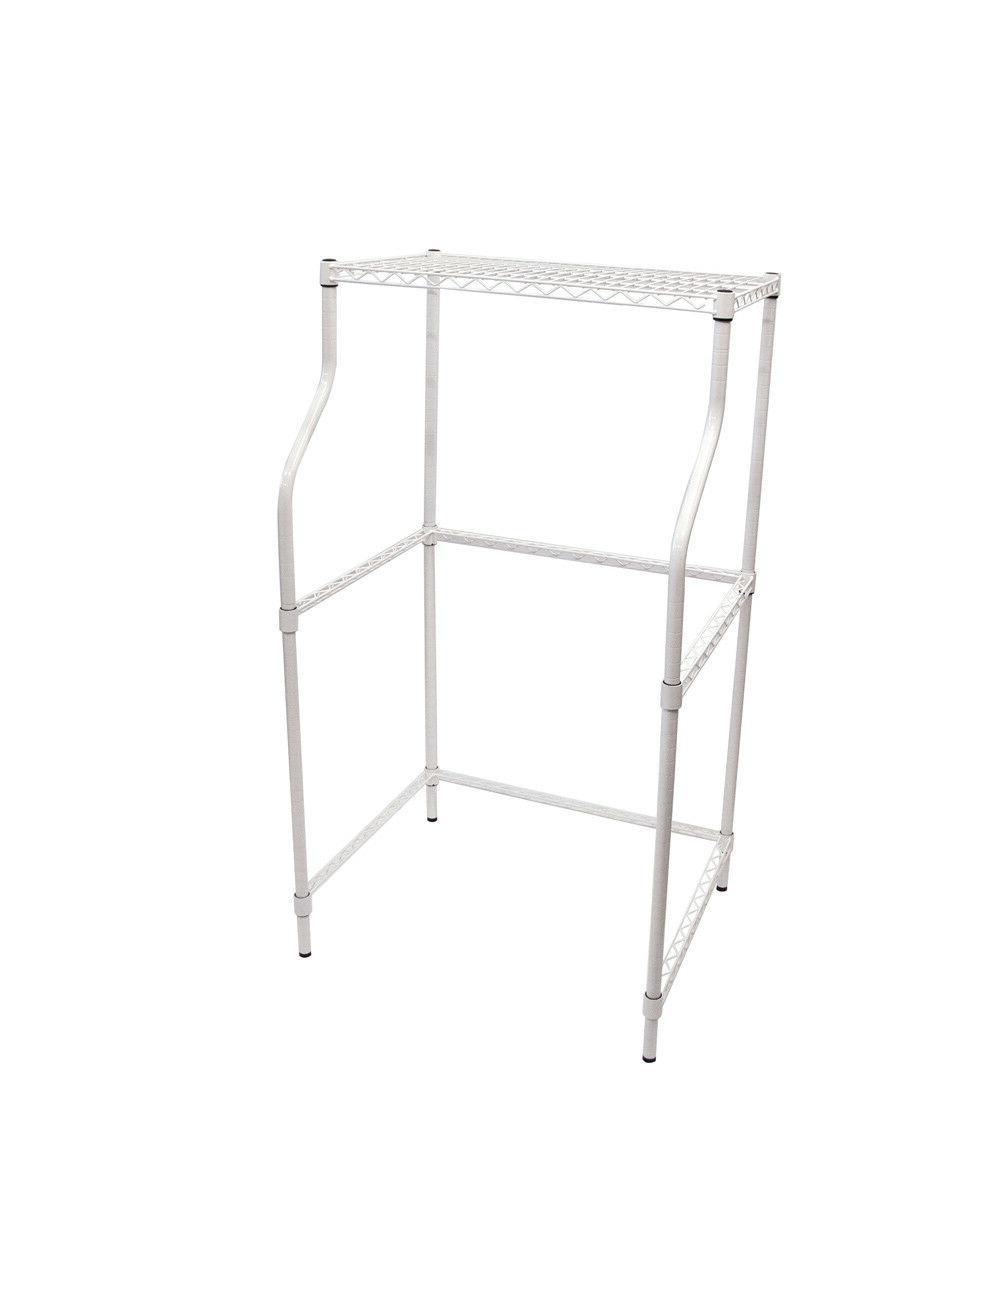 Compact Laundry Stand Portable Storage Dryer Washer Adjustable